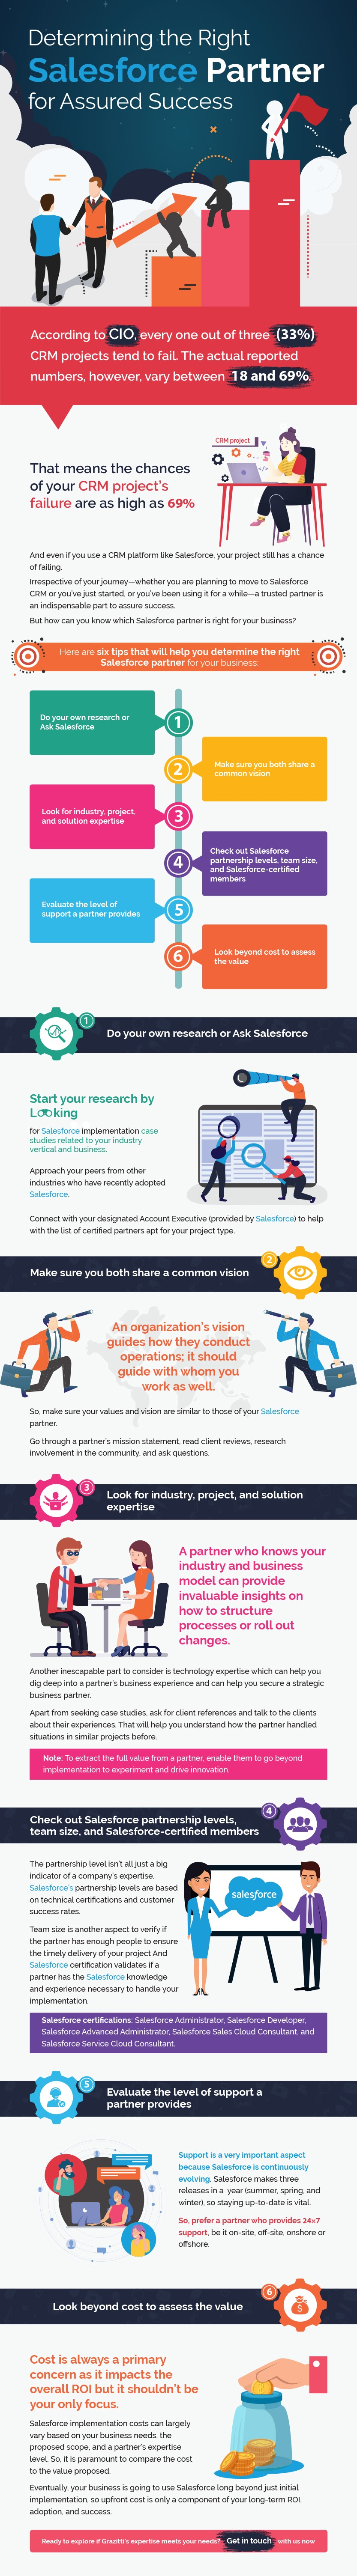 Determining The Right Salesforce Partner For Assured Success #infographic